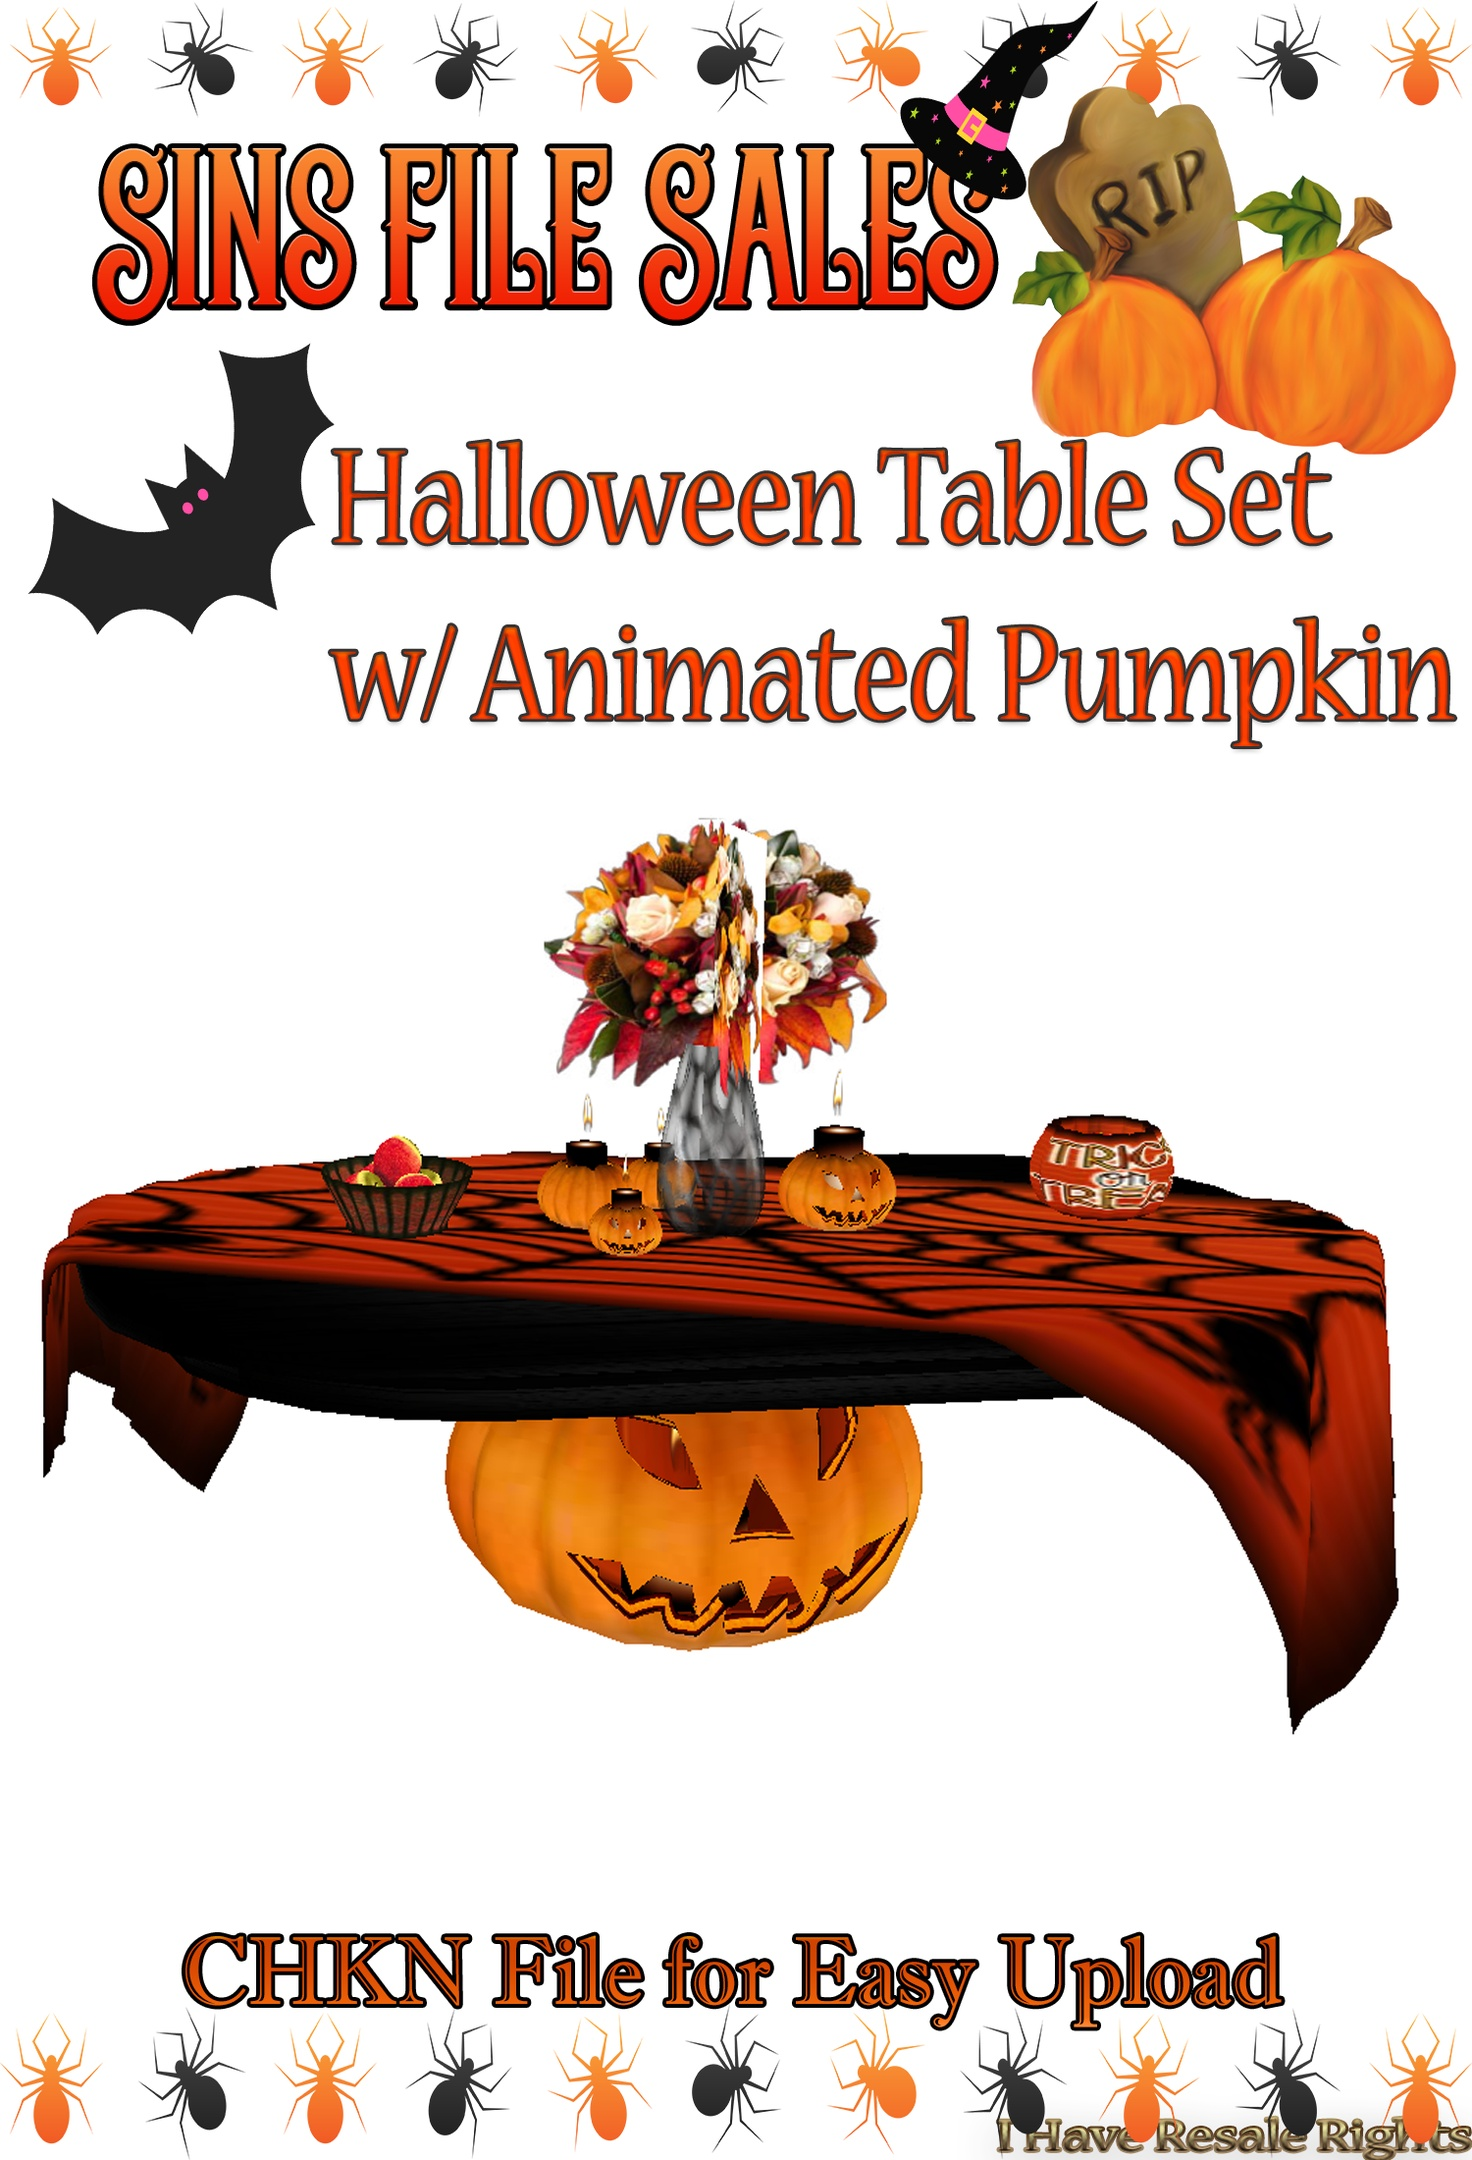 Halloween Table w/Animated Pumpkin